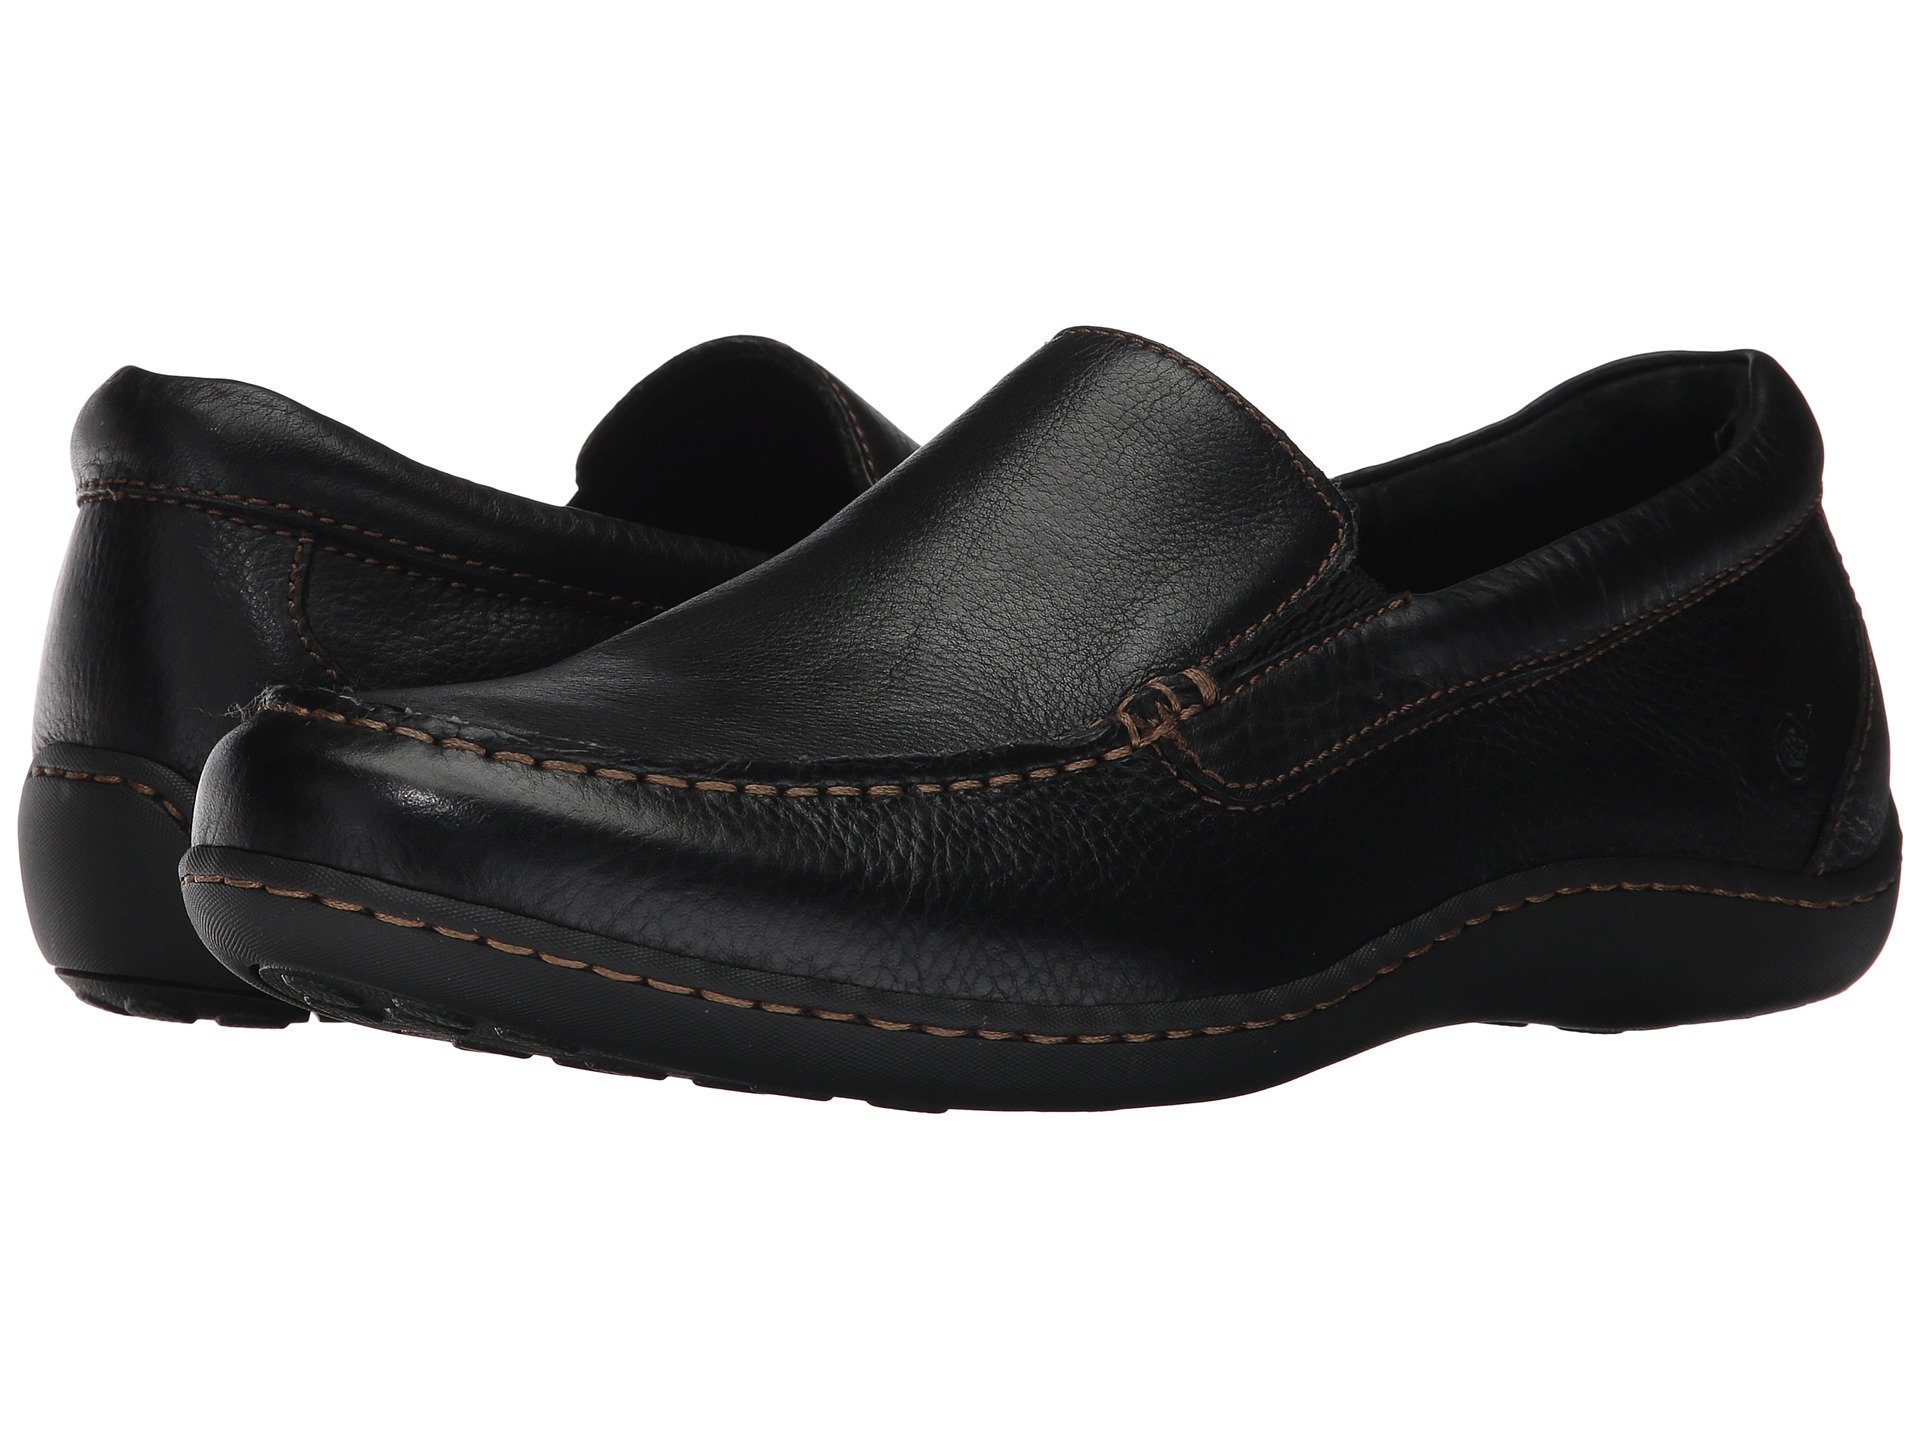 e9f57d4d0158 Men s Born Loafers + FREE SHIPPING